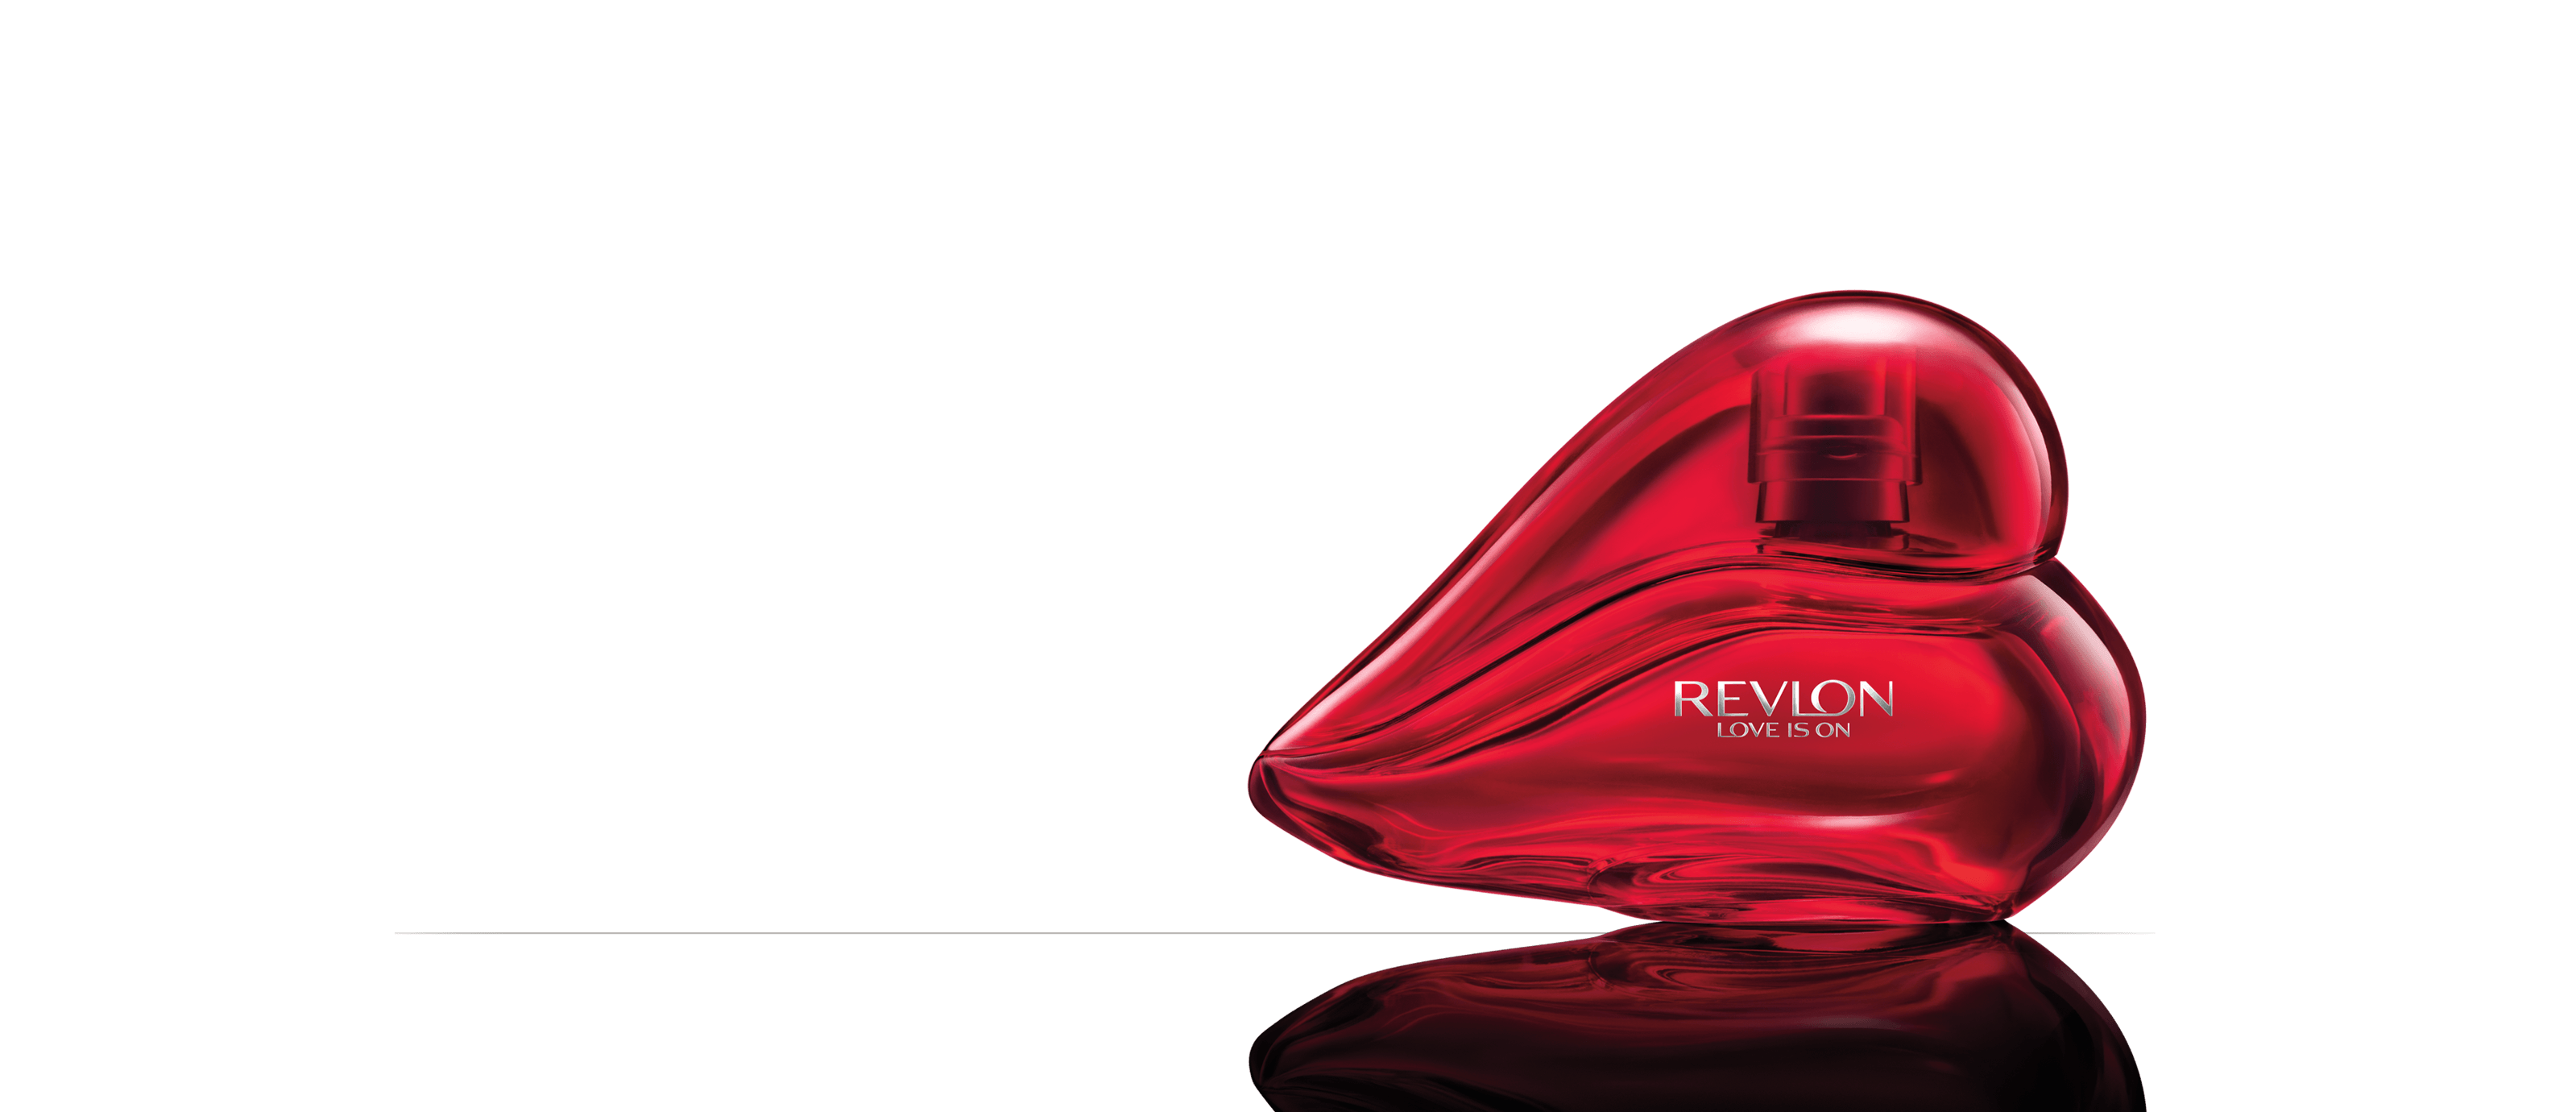 Revlon Love Is On Fragrance - By Megan Kelly